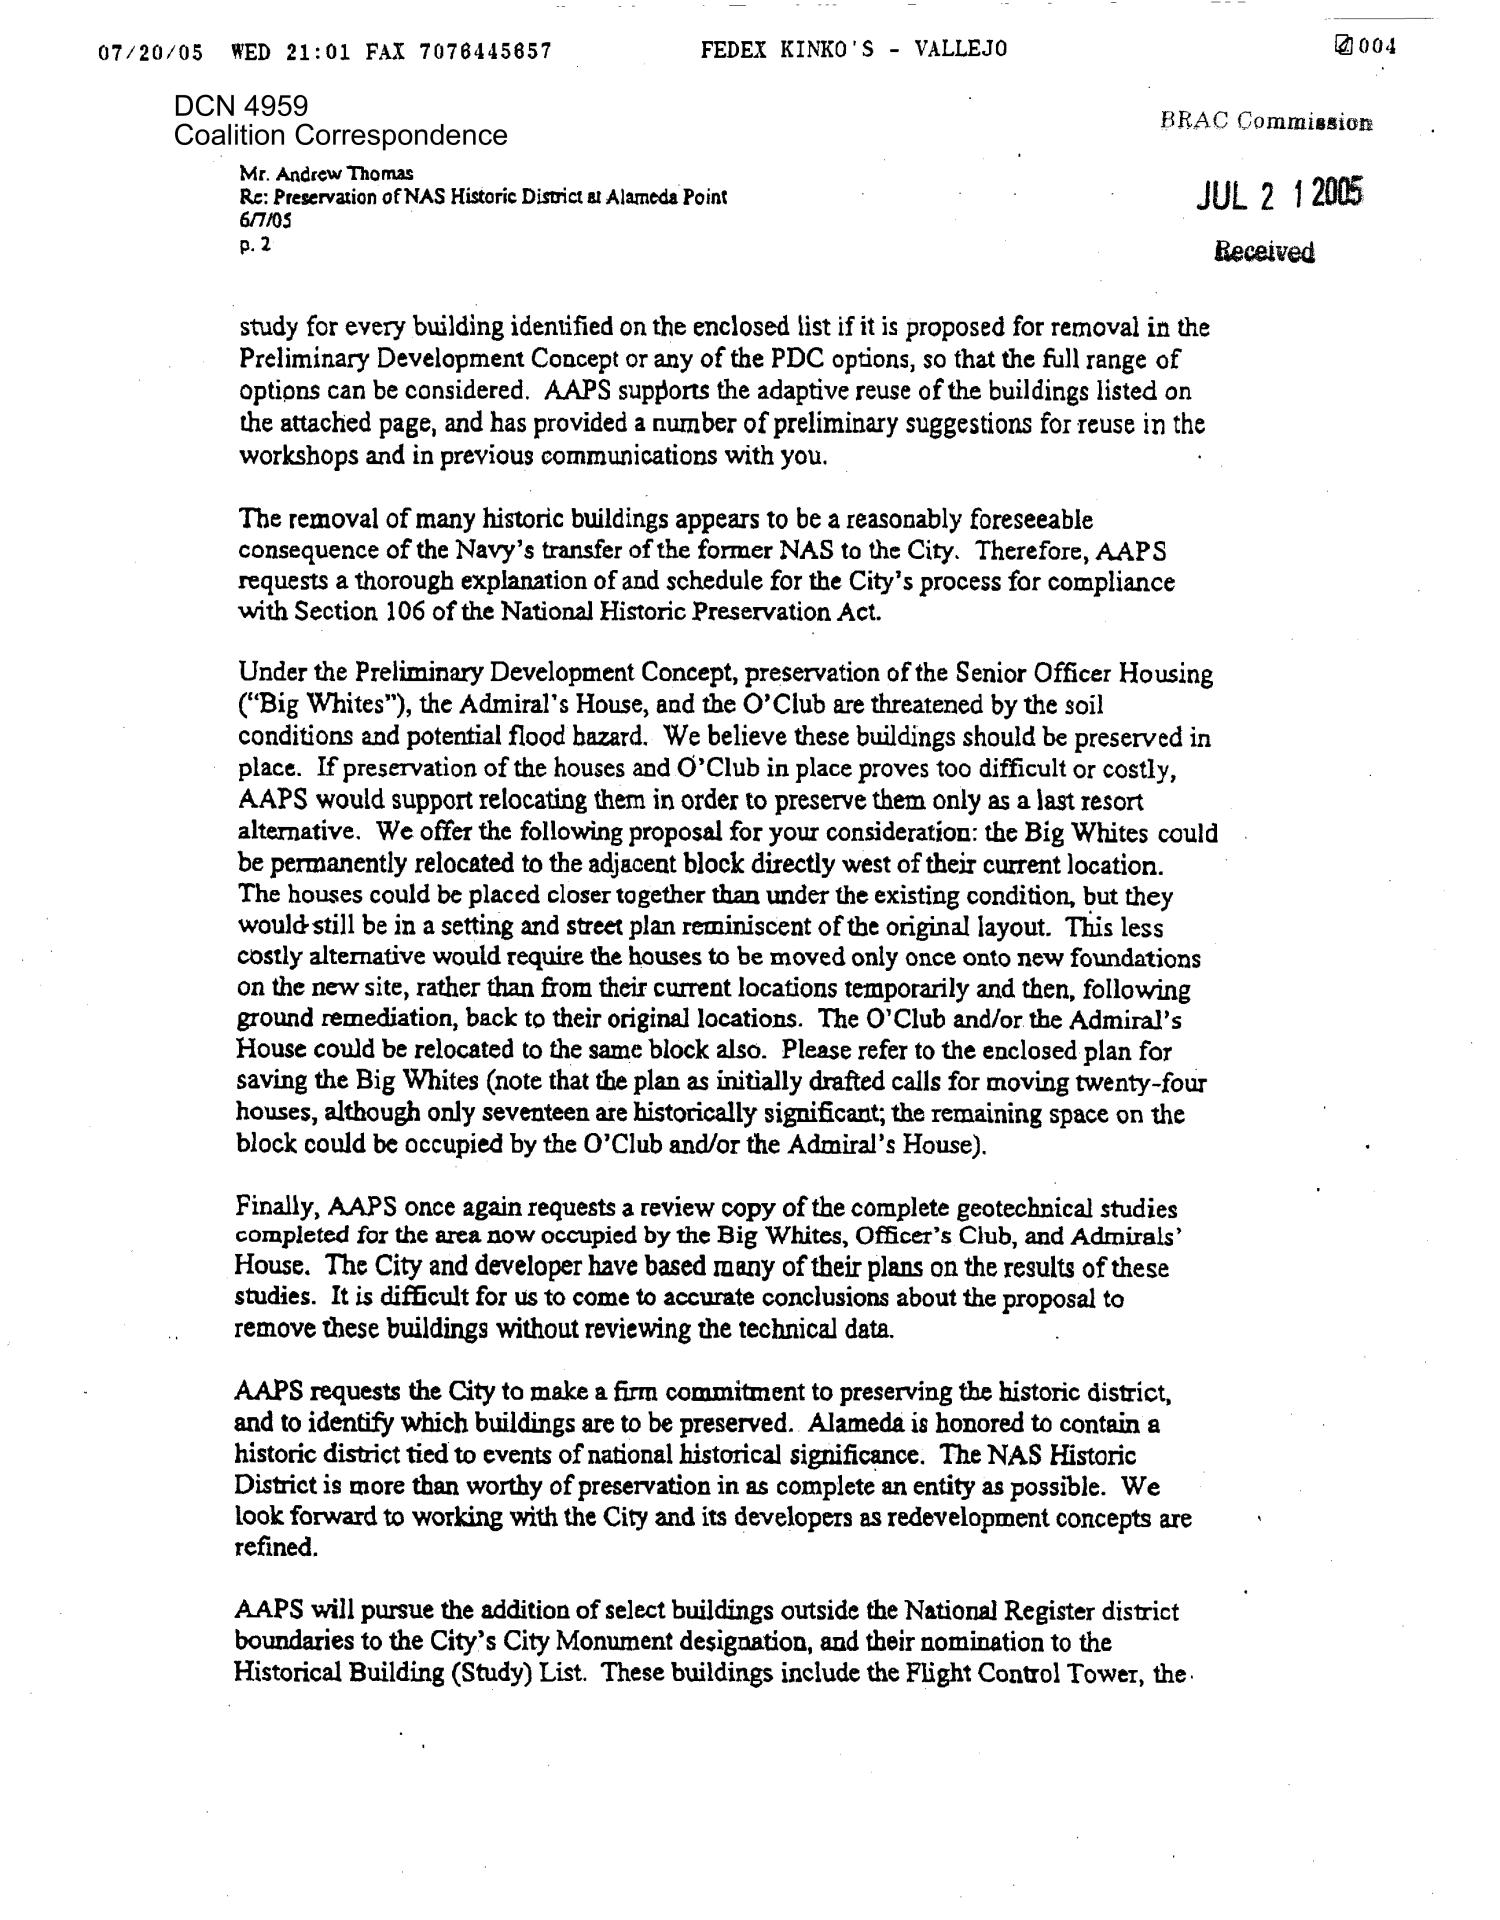 Coalition Correspondence – dtd 07/18/2005 to Chairman Principi from James Watson                                                                                                      [Sequence #]: 4 of 10